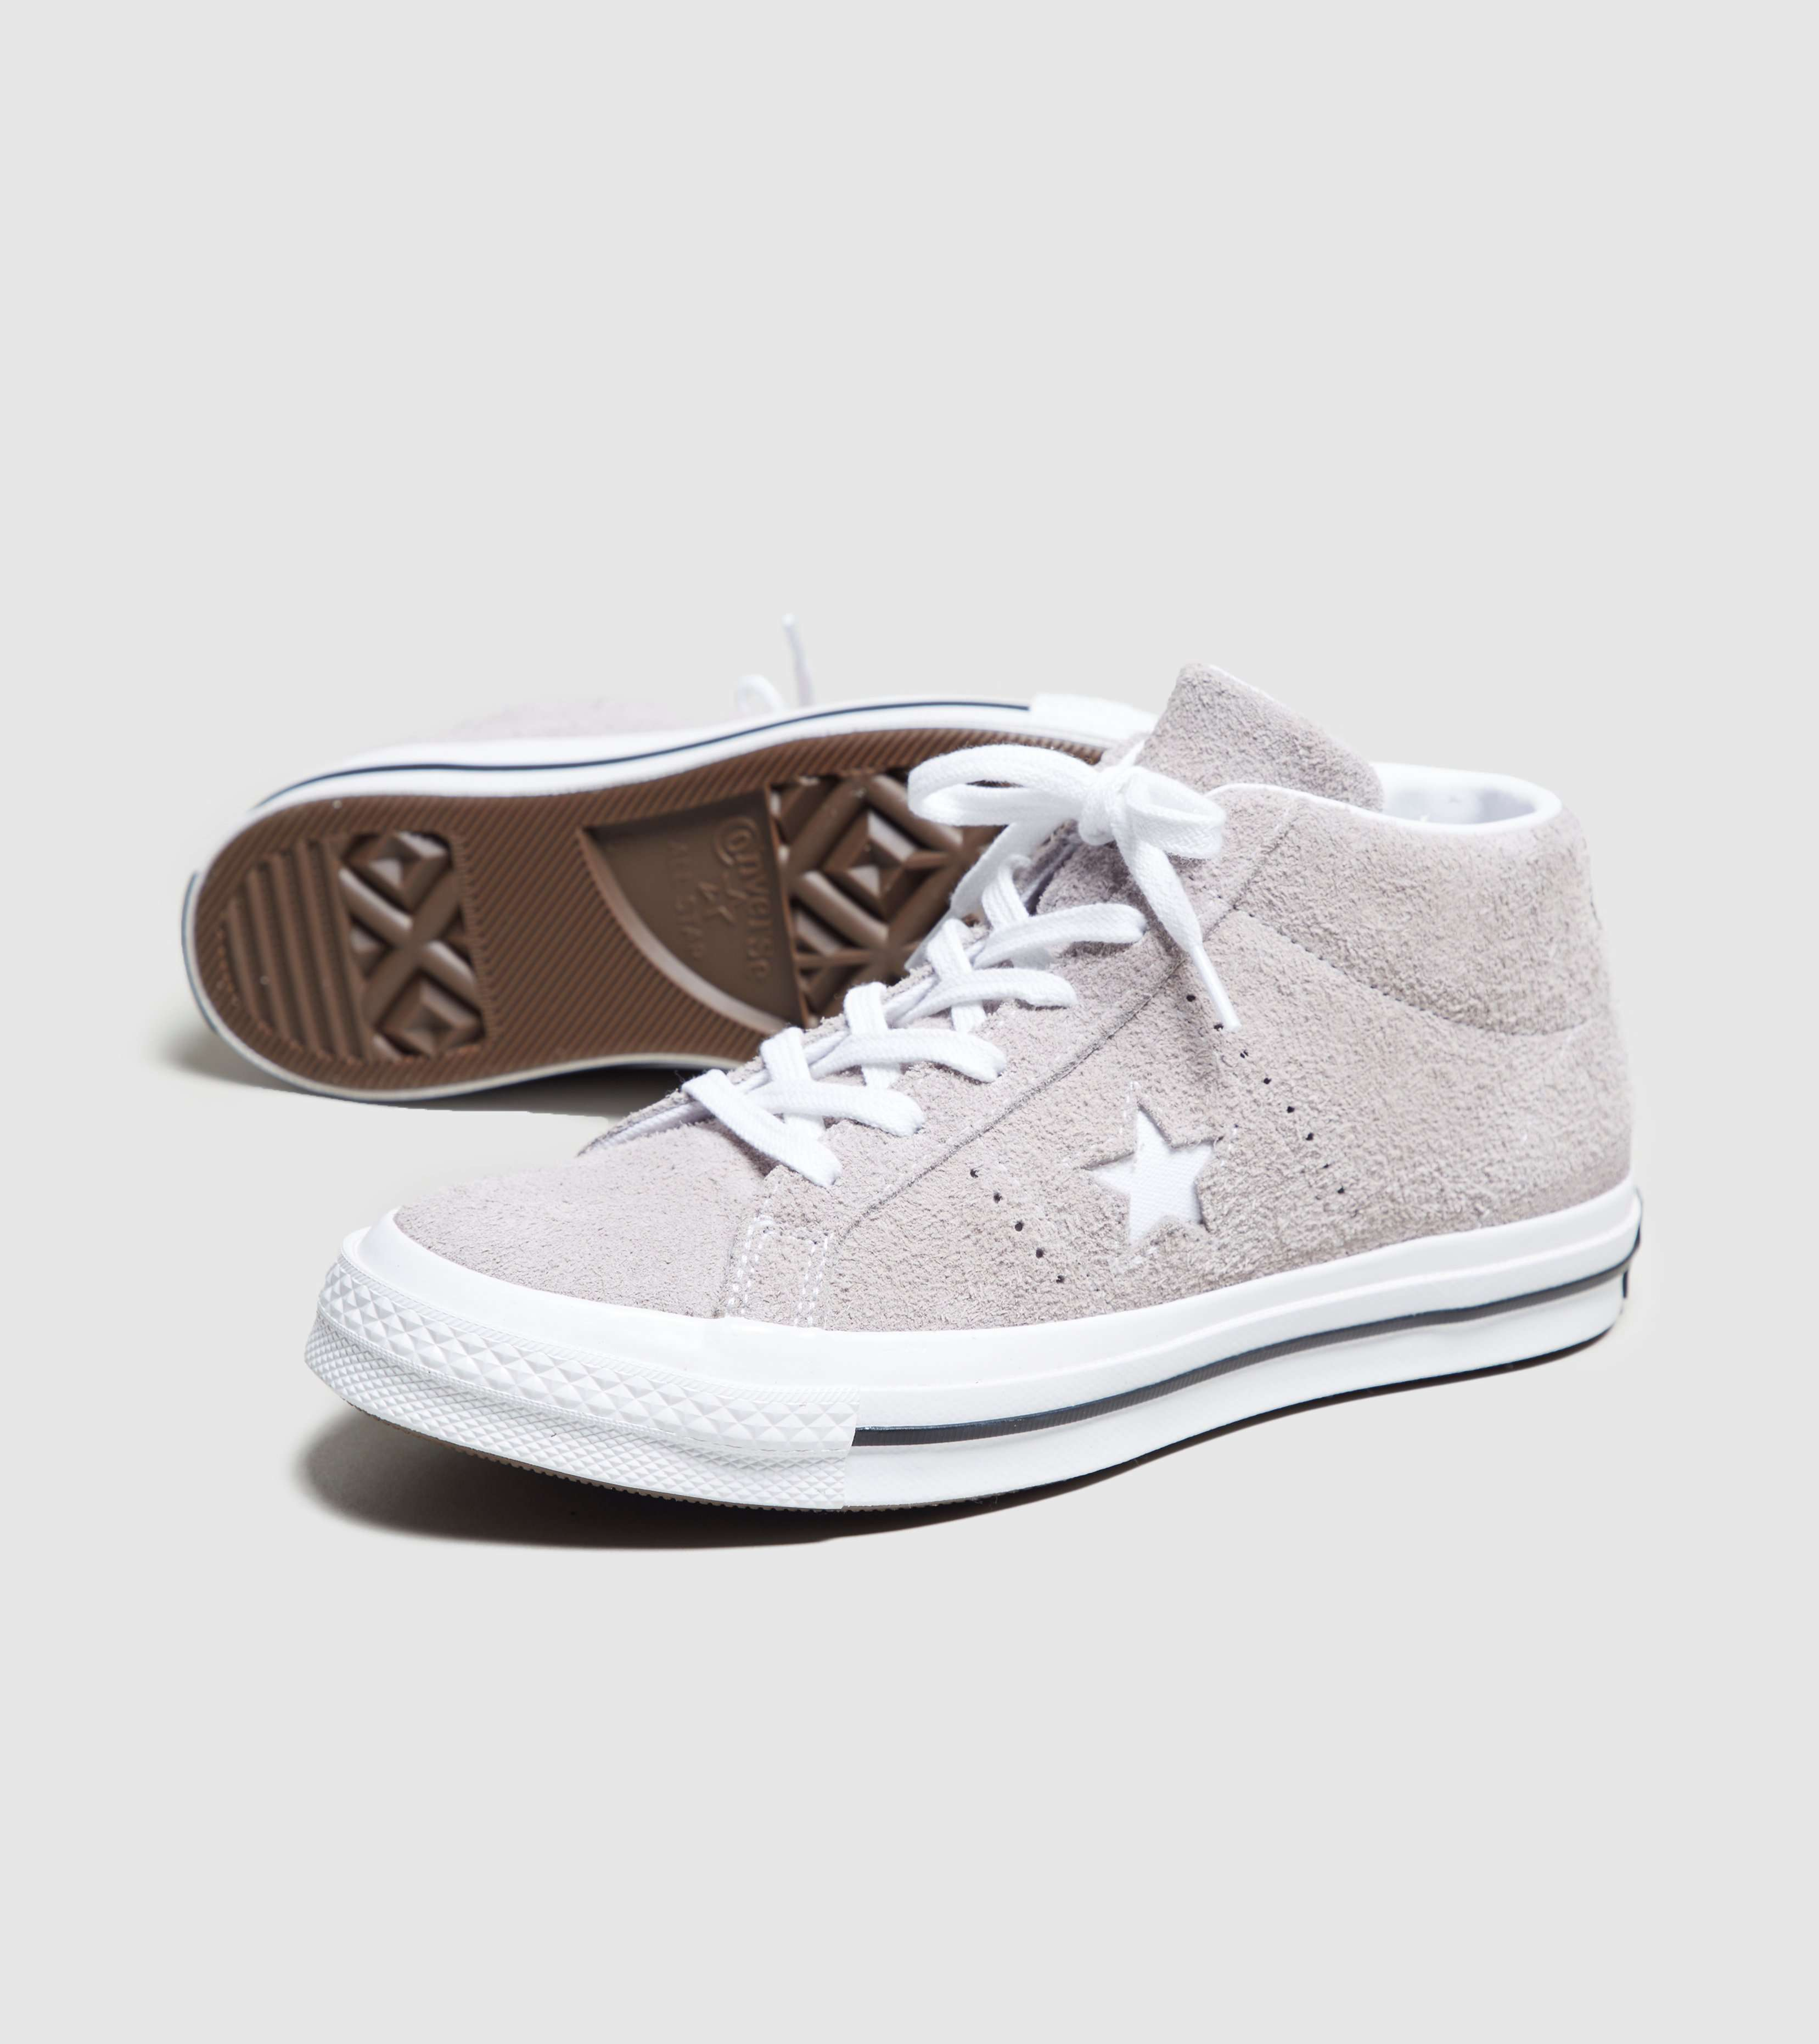 Converse One Star Mid Women's